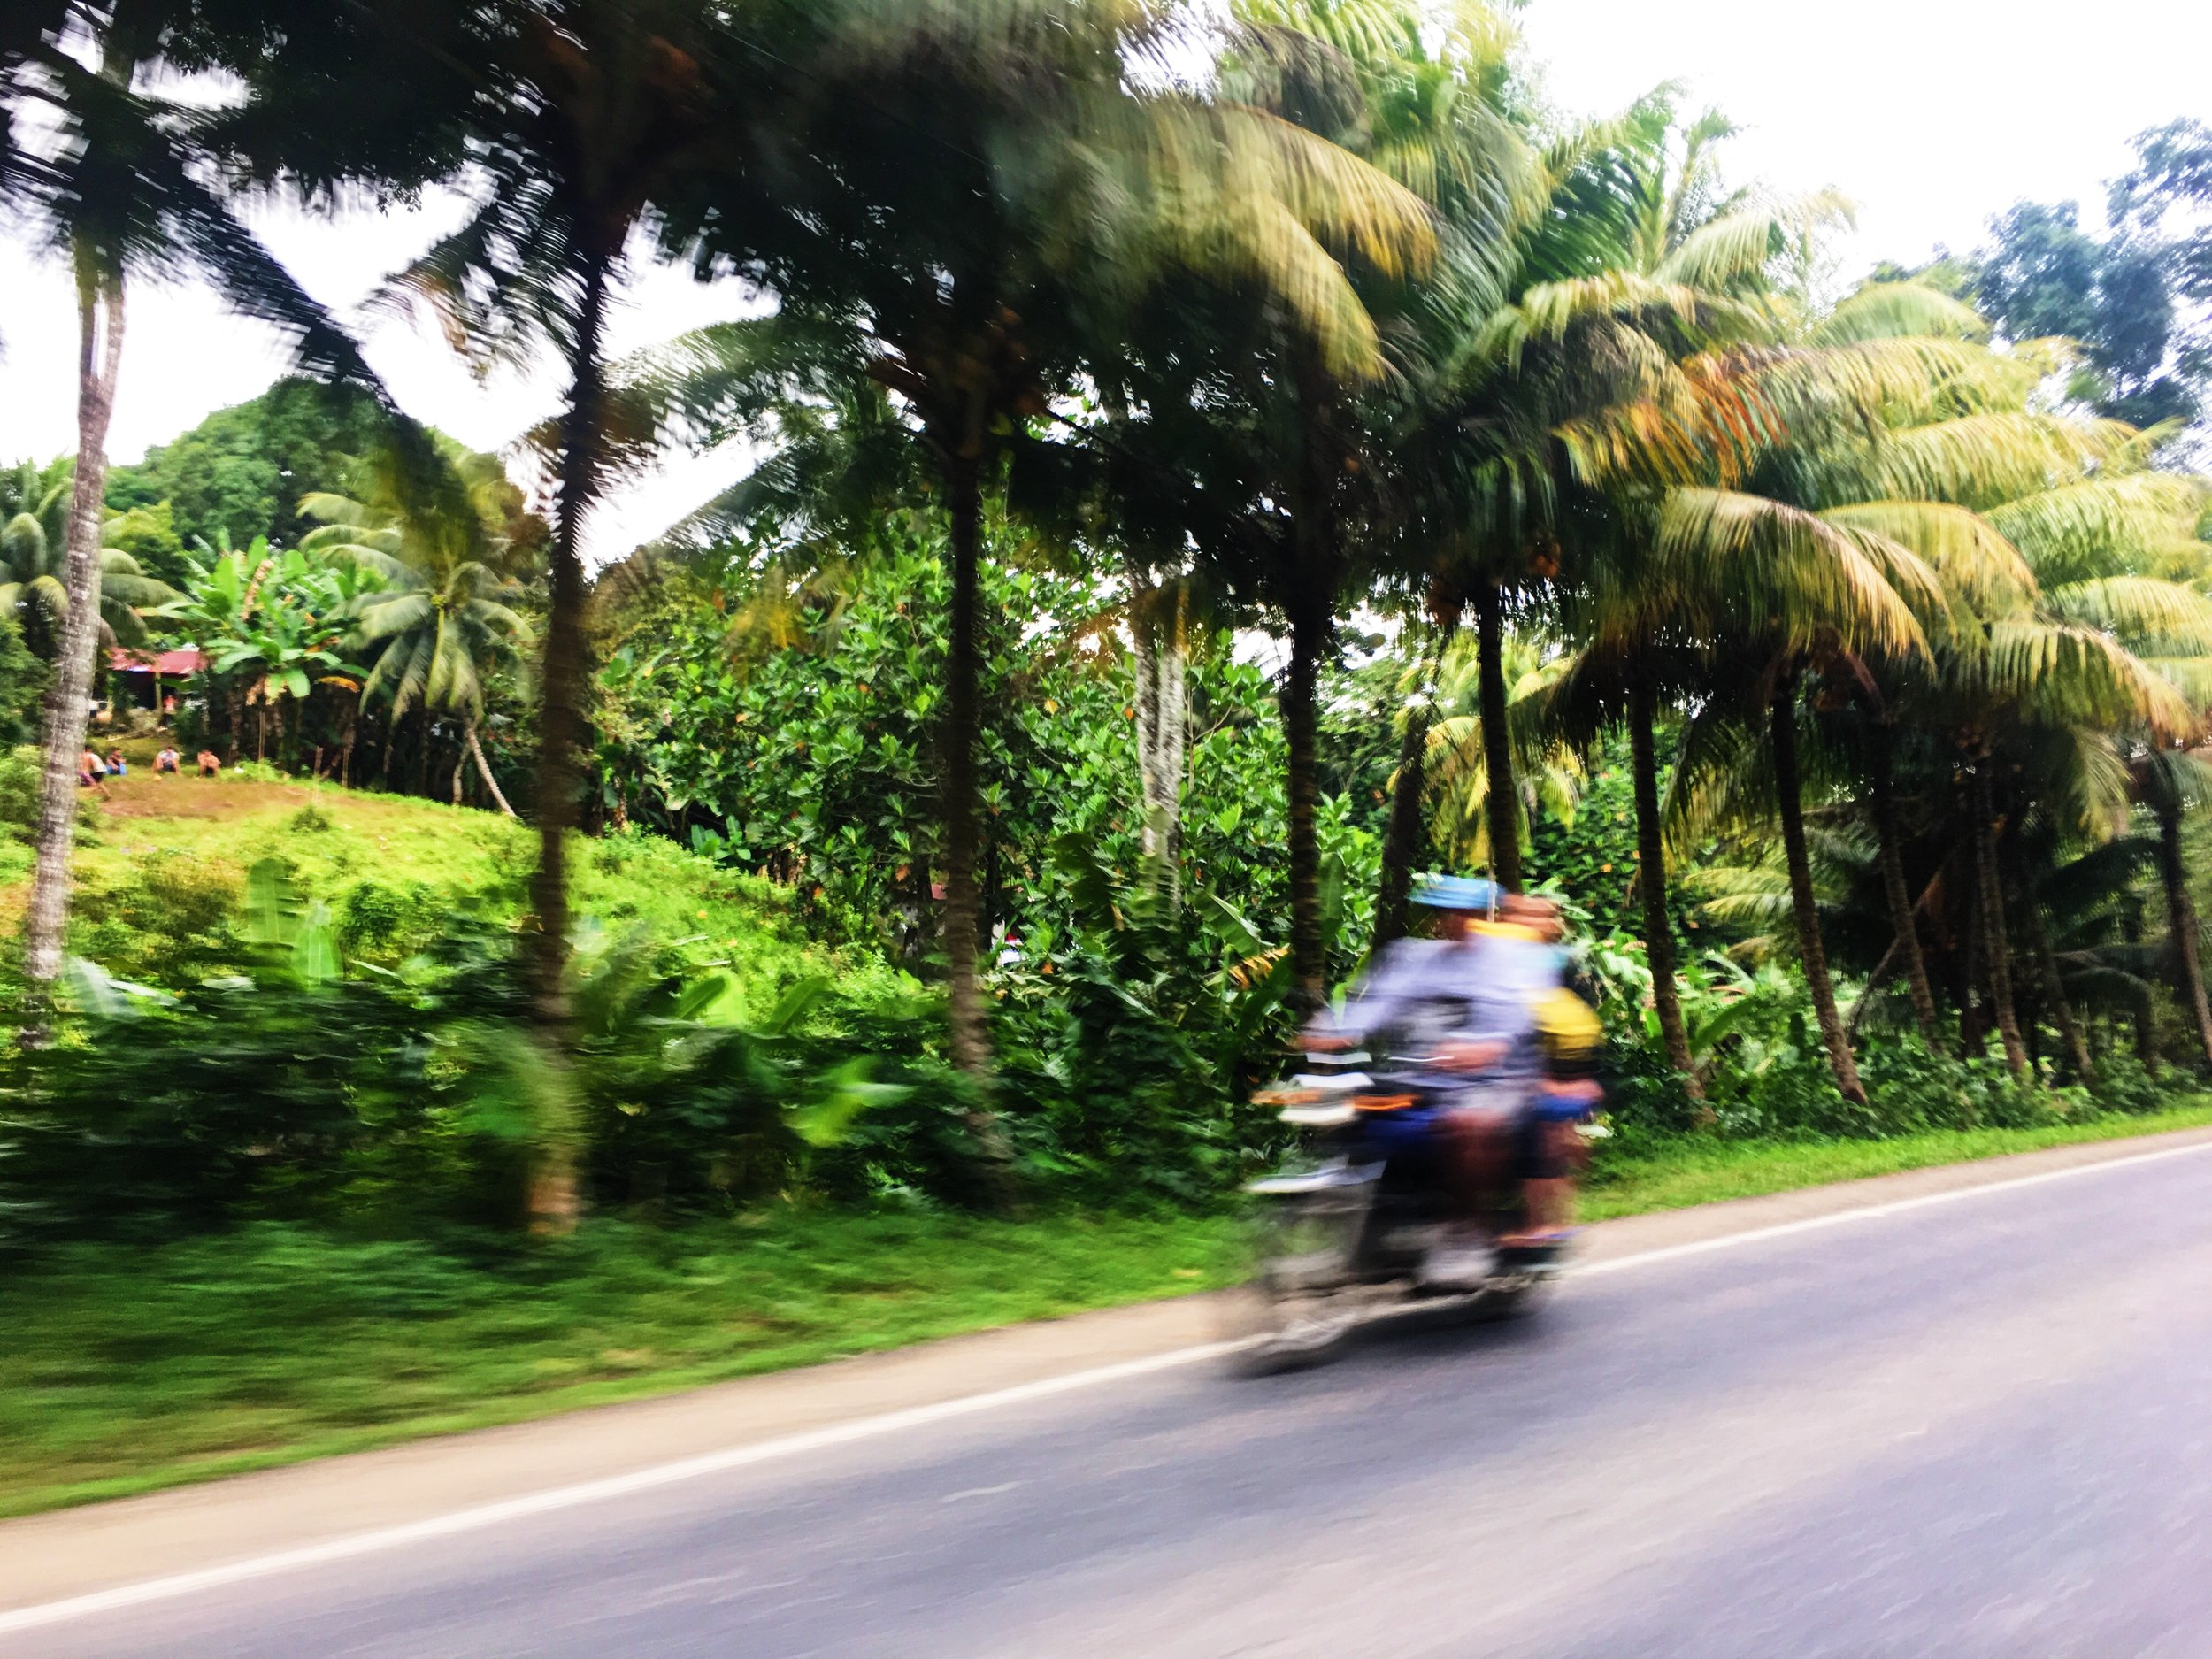 Motorcyclists brave the perilous roads often without helmets!